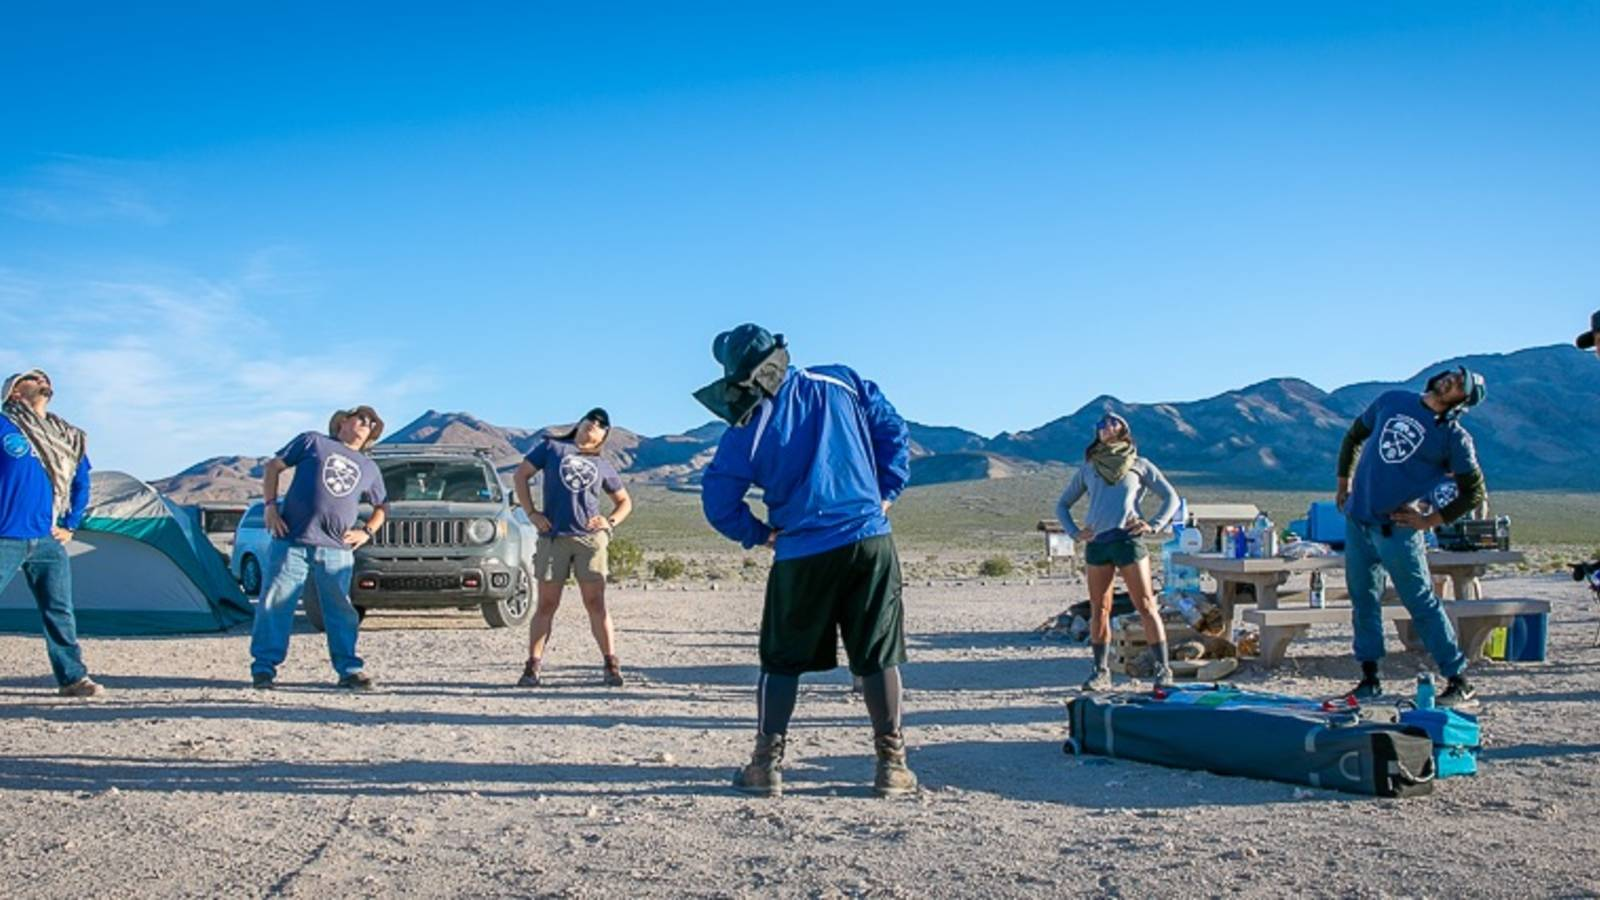 <p>On a trip to Death Valley National Park, veterans take part in some mindful movement, including yoga stretches.</p>